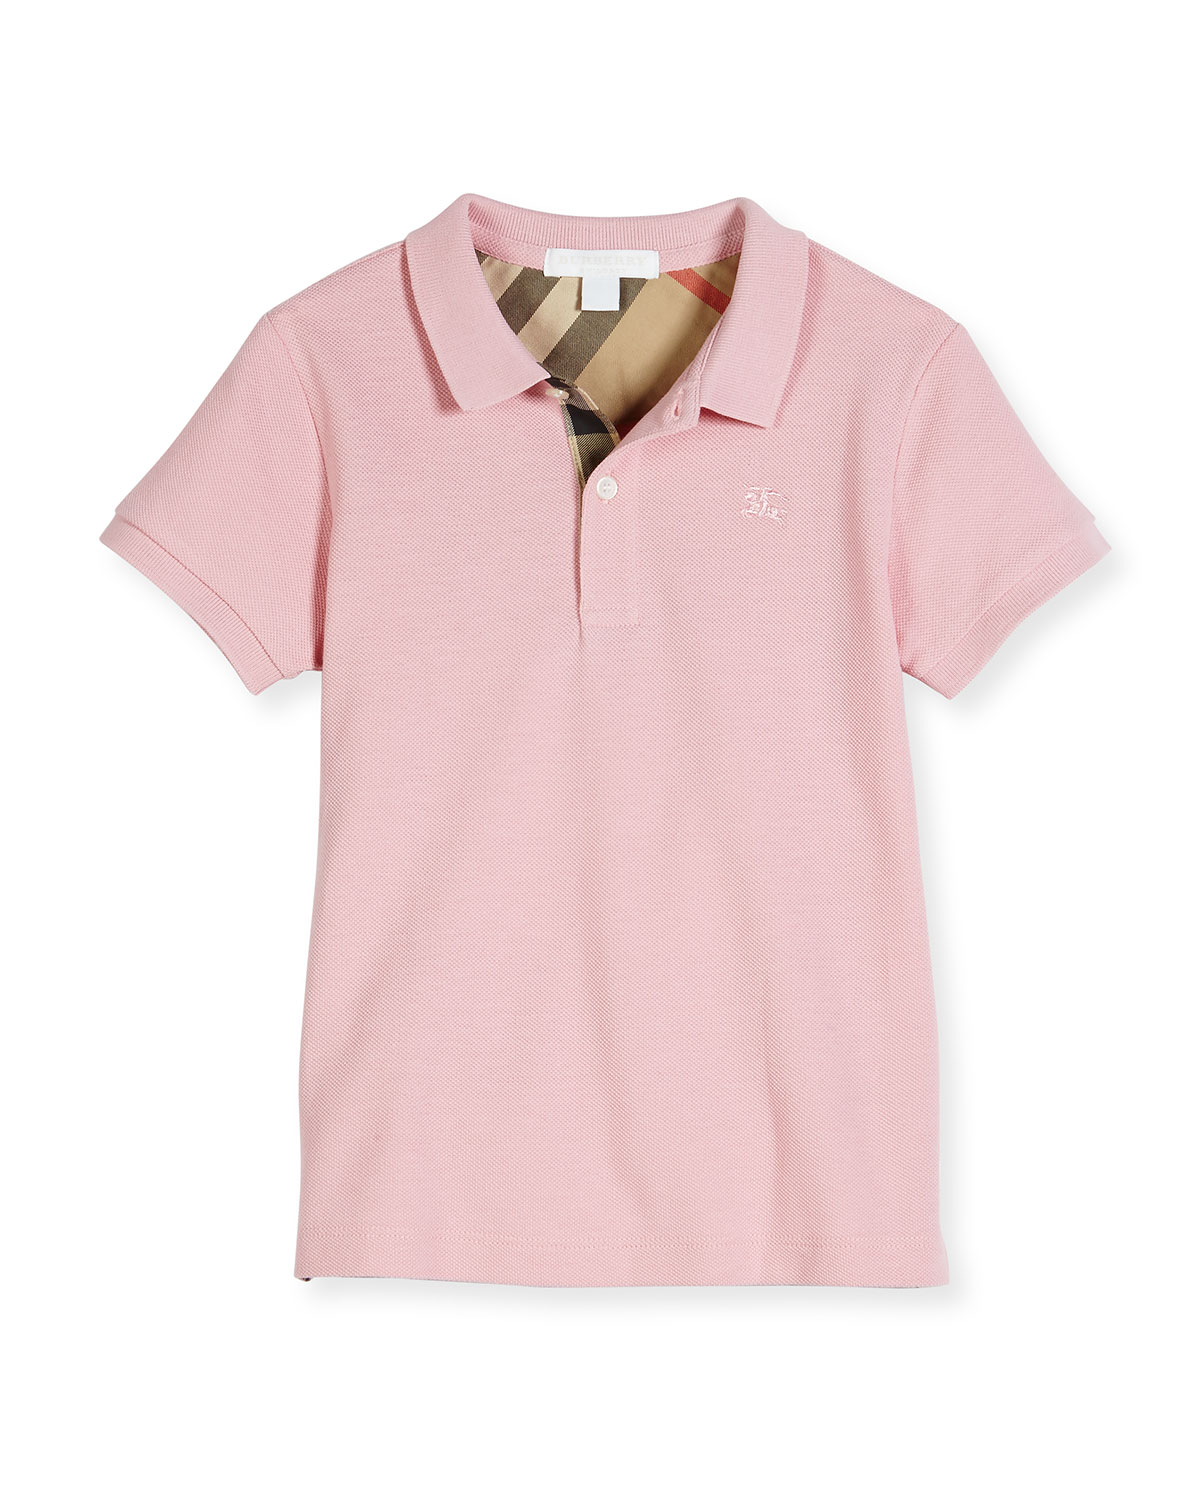 Mini PPM Pique Polo Shirt, Light Pink, Size 4-14